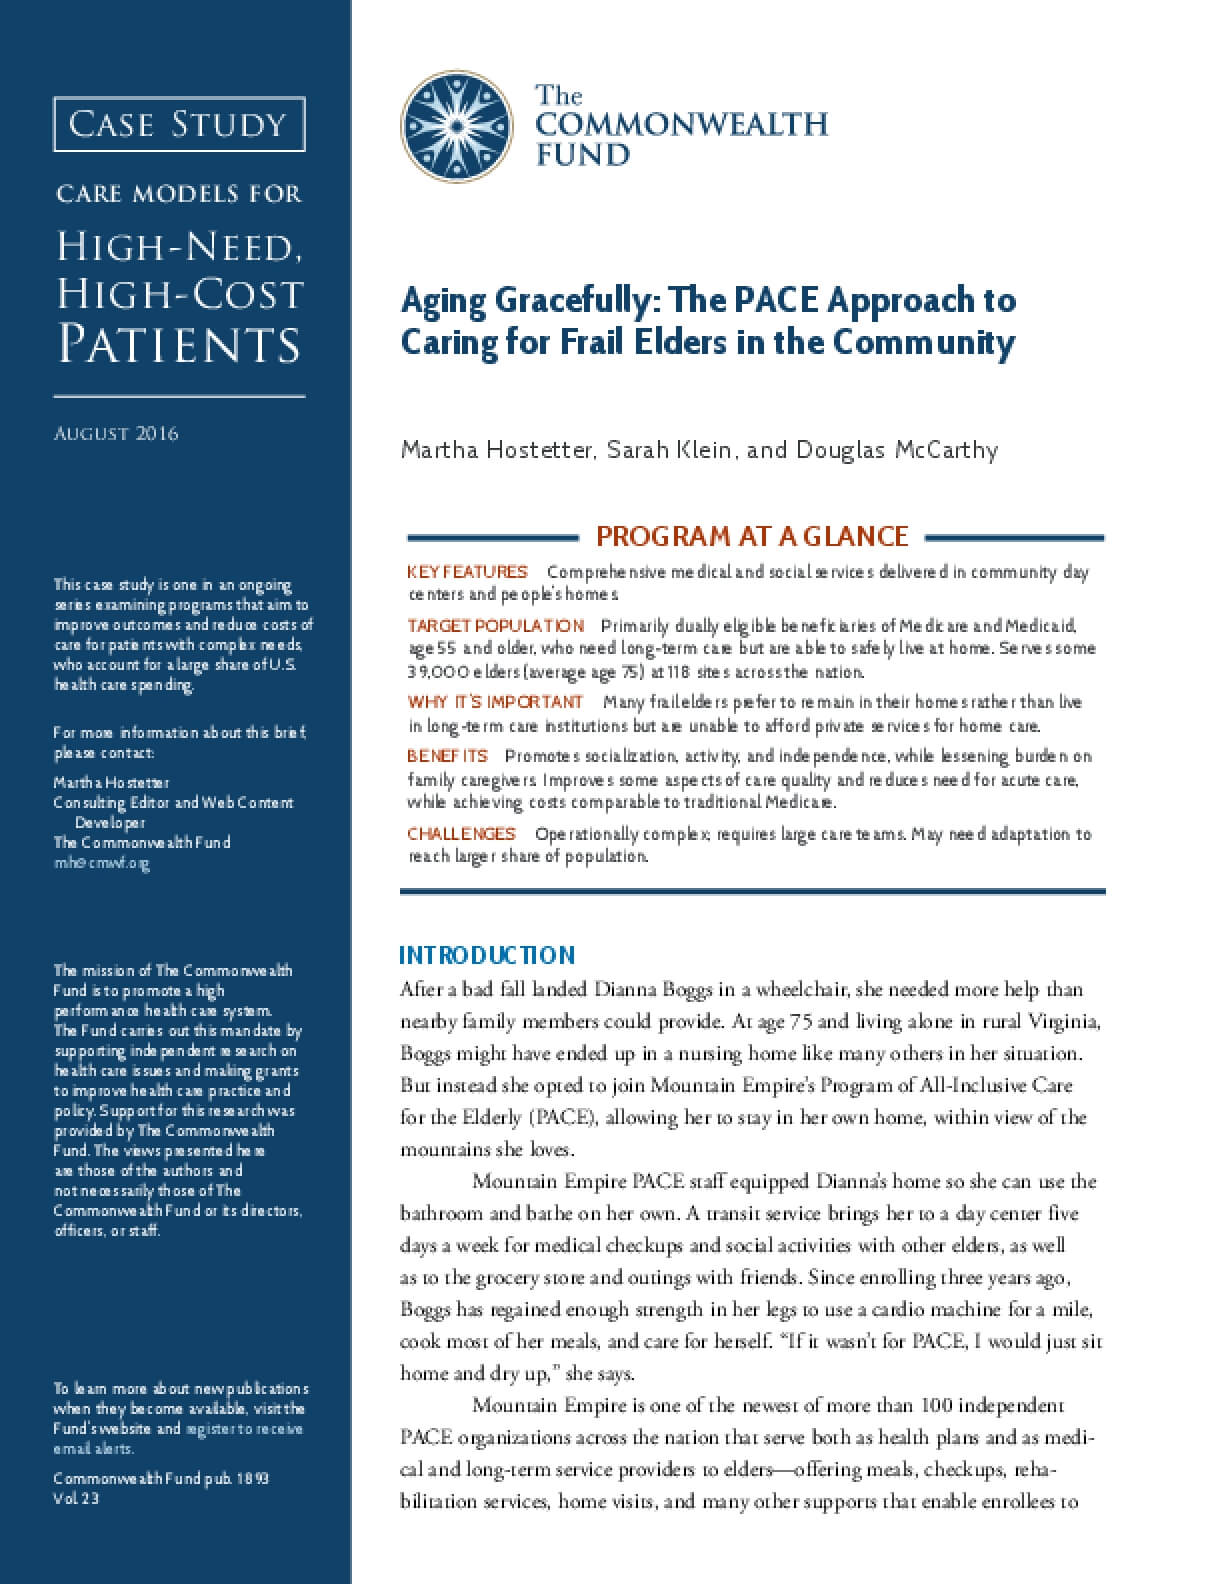 Aging Gracefully: The PACE Approach to Caring for Frail Elders in the Community